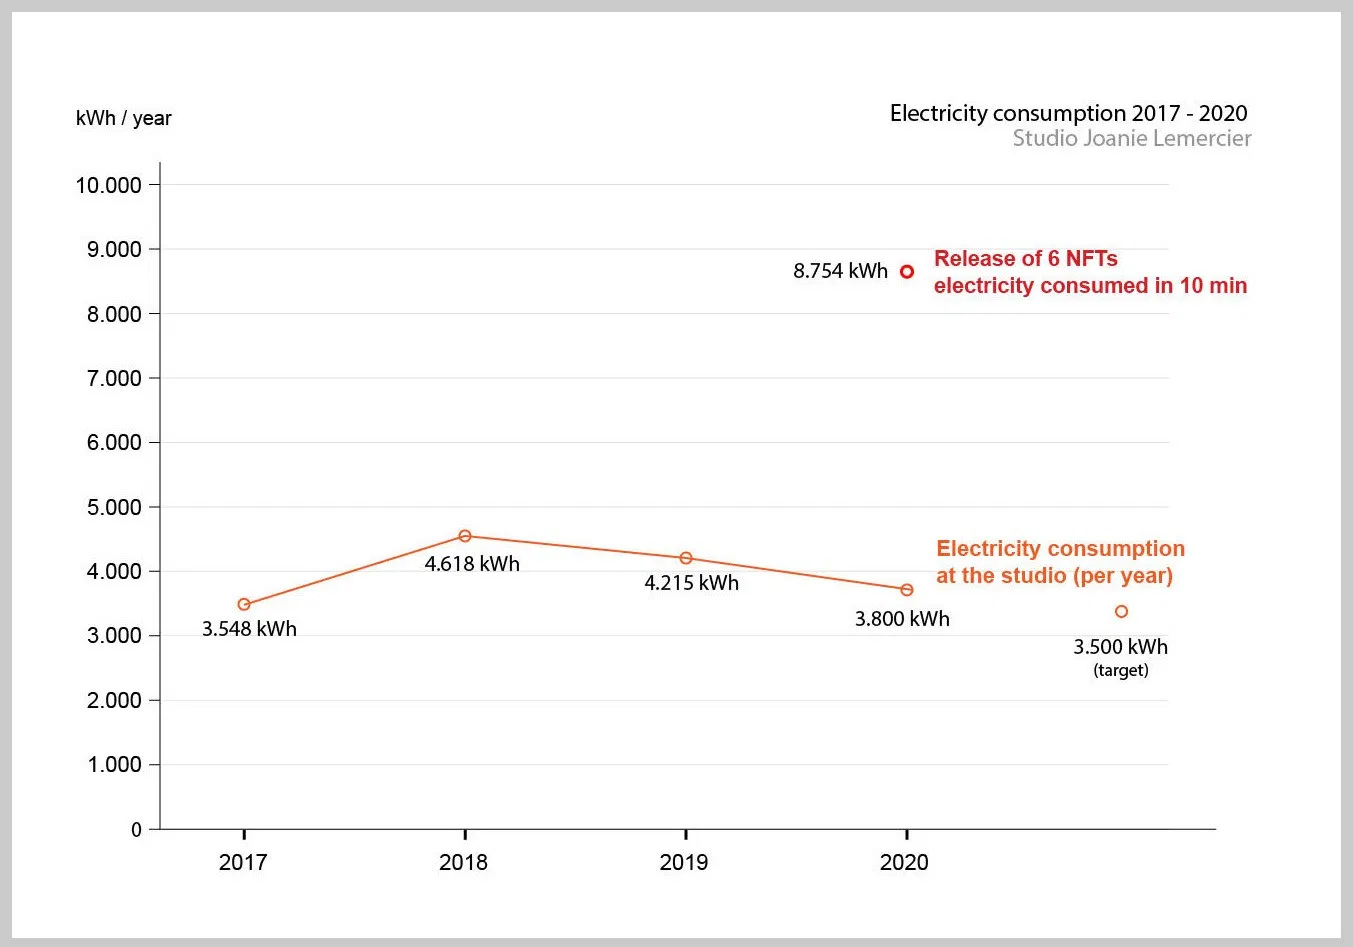 Graph of the electricity consumption of Joanie Mercier's art studio over 2017-2020 (avg 4000 kwH/yr) compared to the energy consumption of the release of six NFTs on Ethereum (8754 kwH)